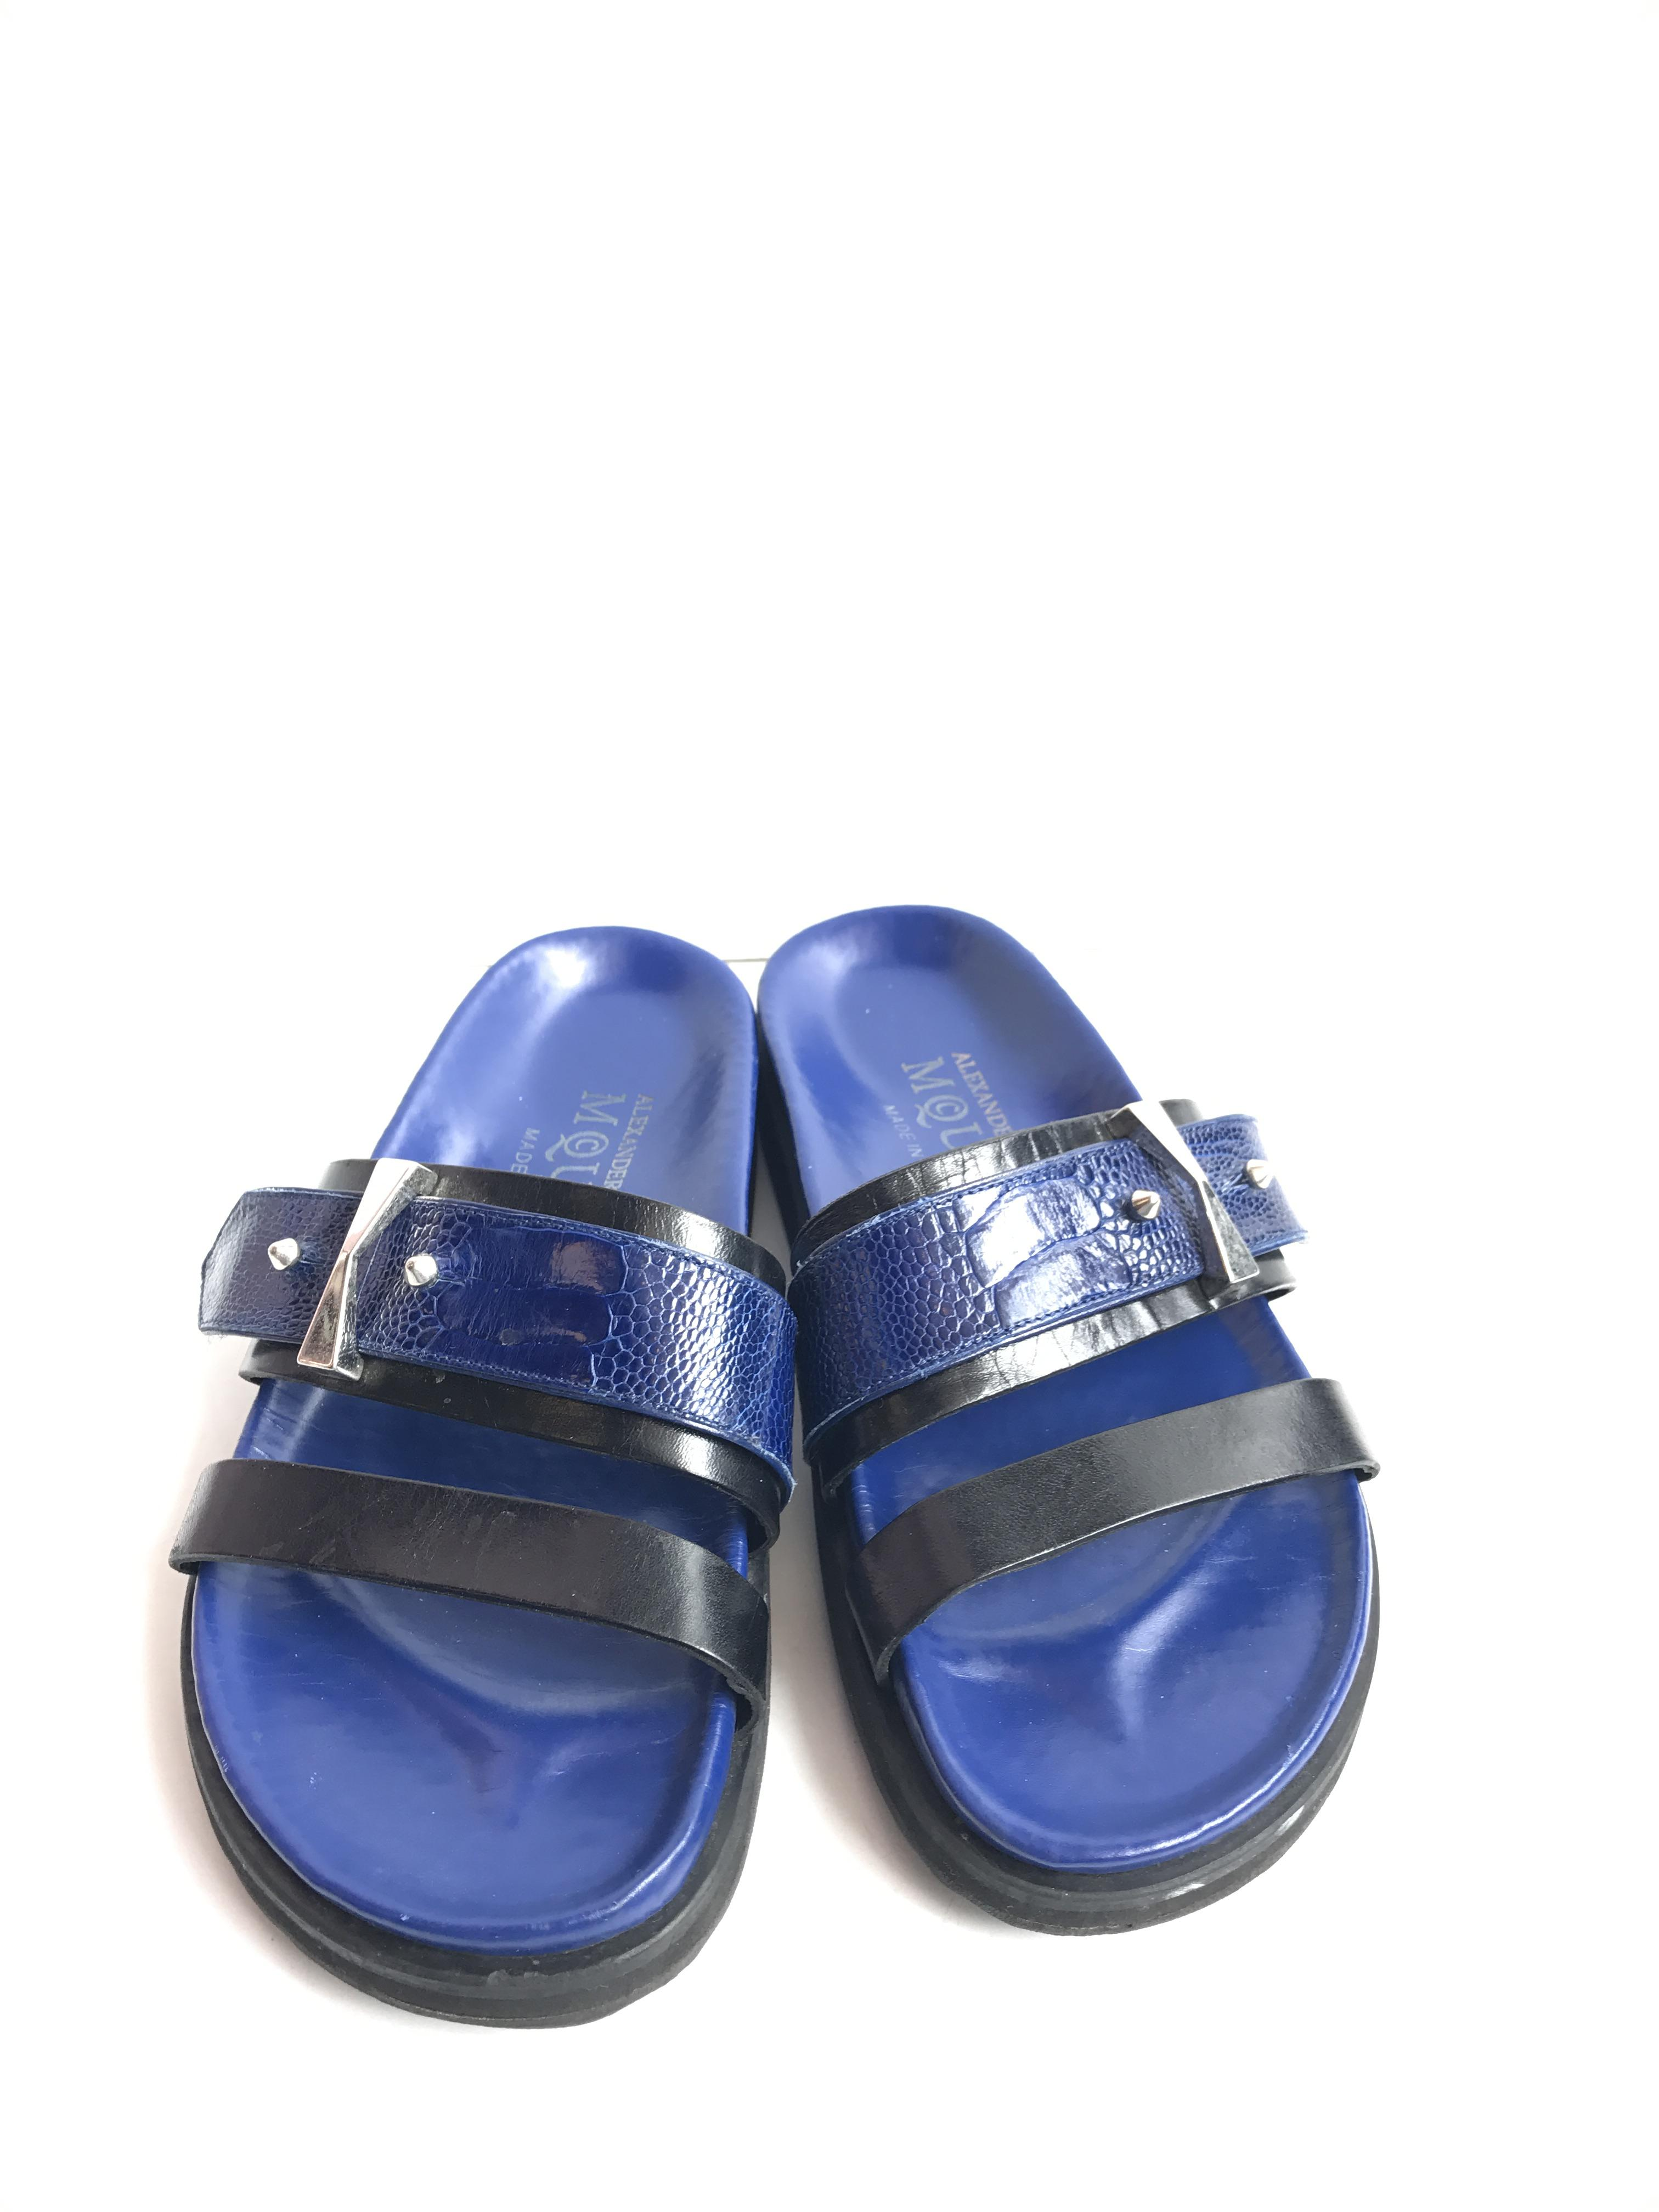 Alexander McQueen blue slip Shoes Price: $199.99